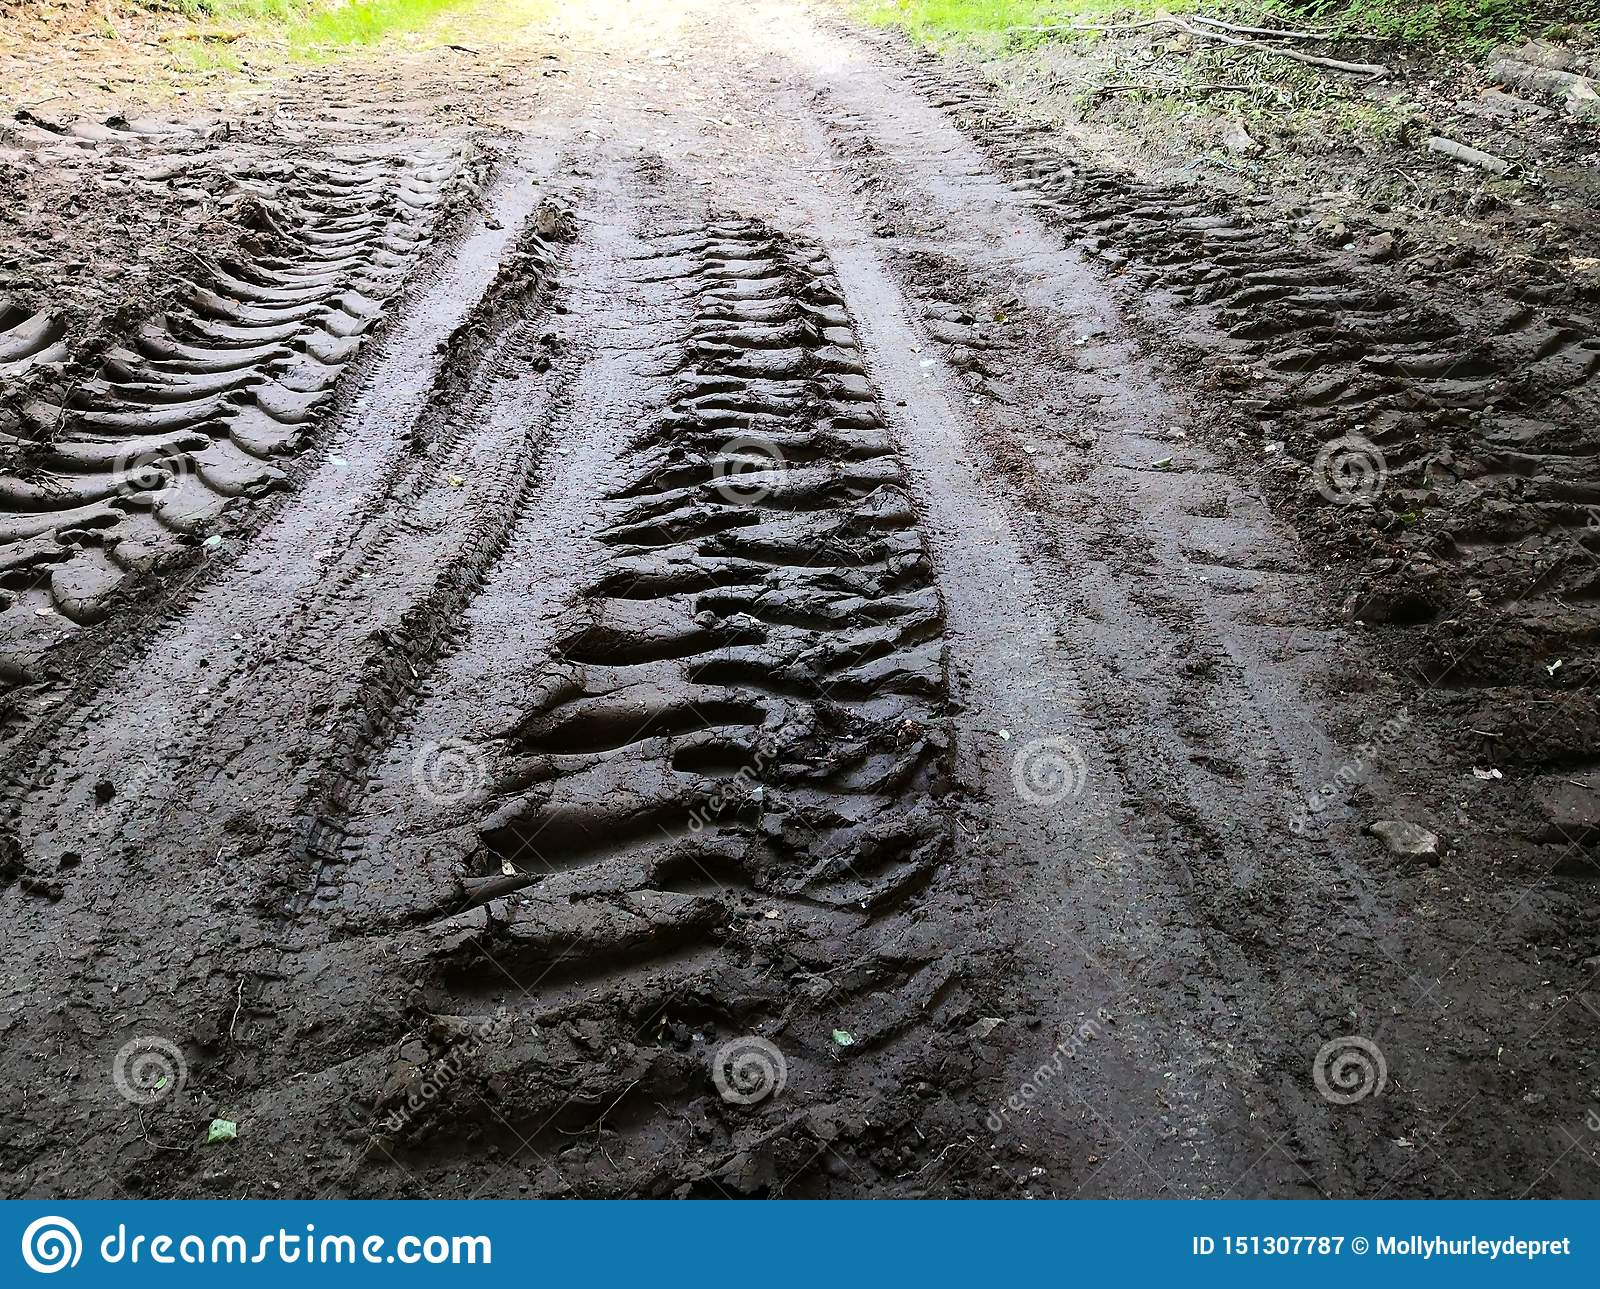 Tire tracks in mud